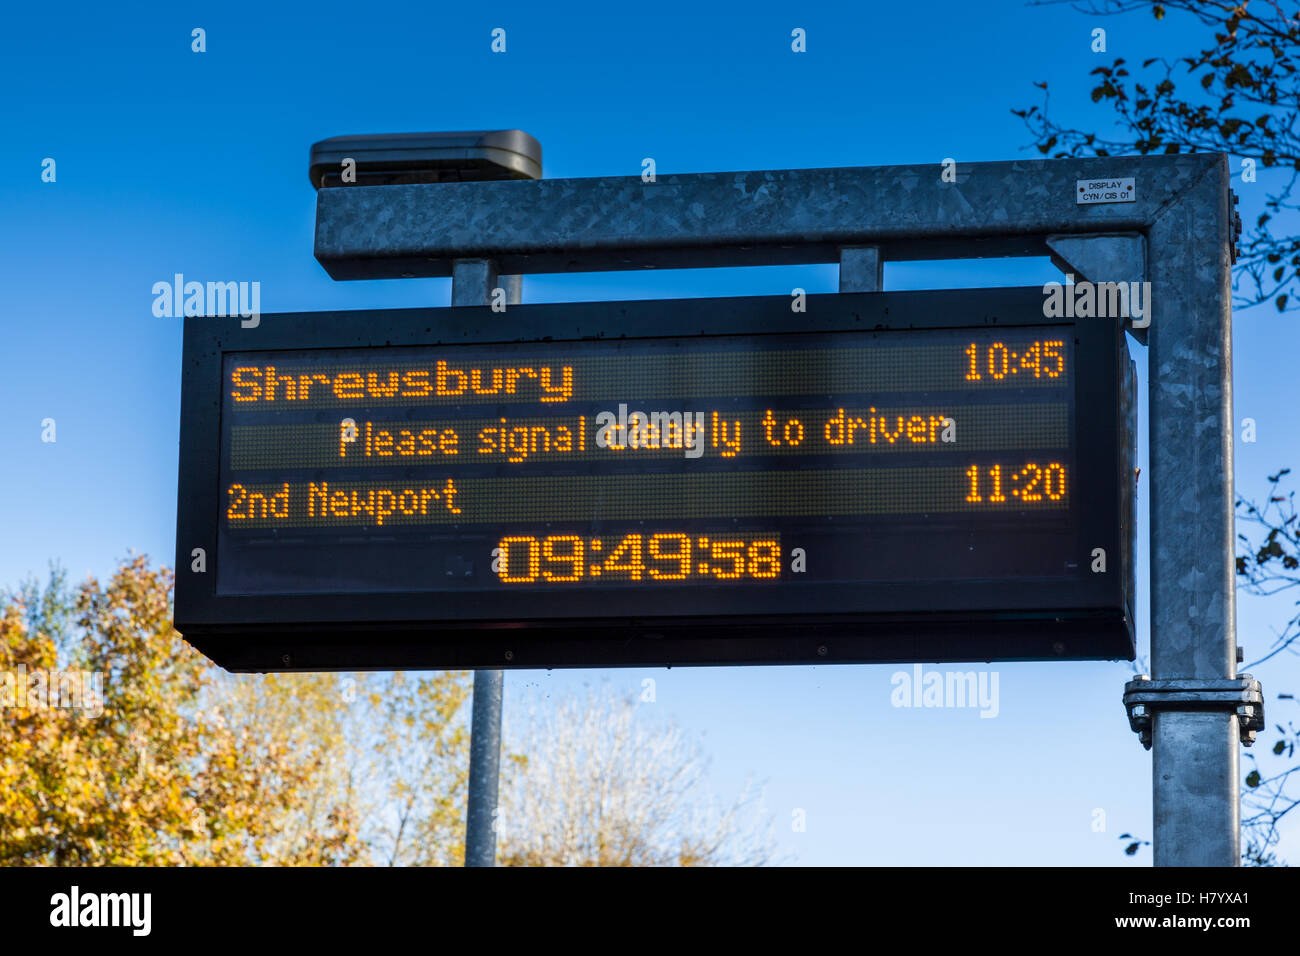 Digital display of the Shrewsbury and Newport train services on the Heart of Wales line at Cynghordy. Carmarthenshire, - Stock Image